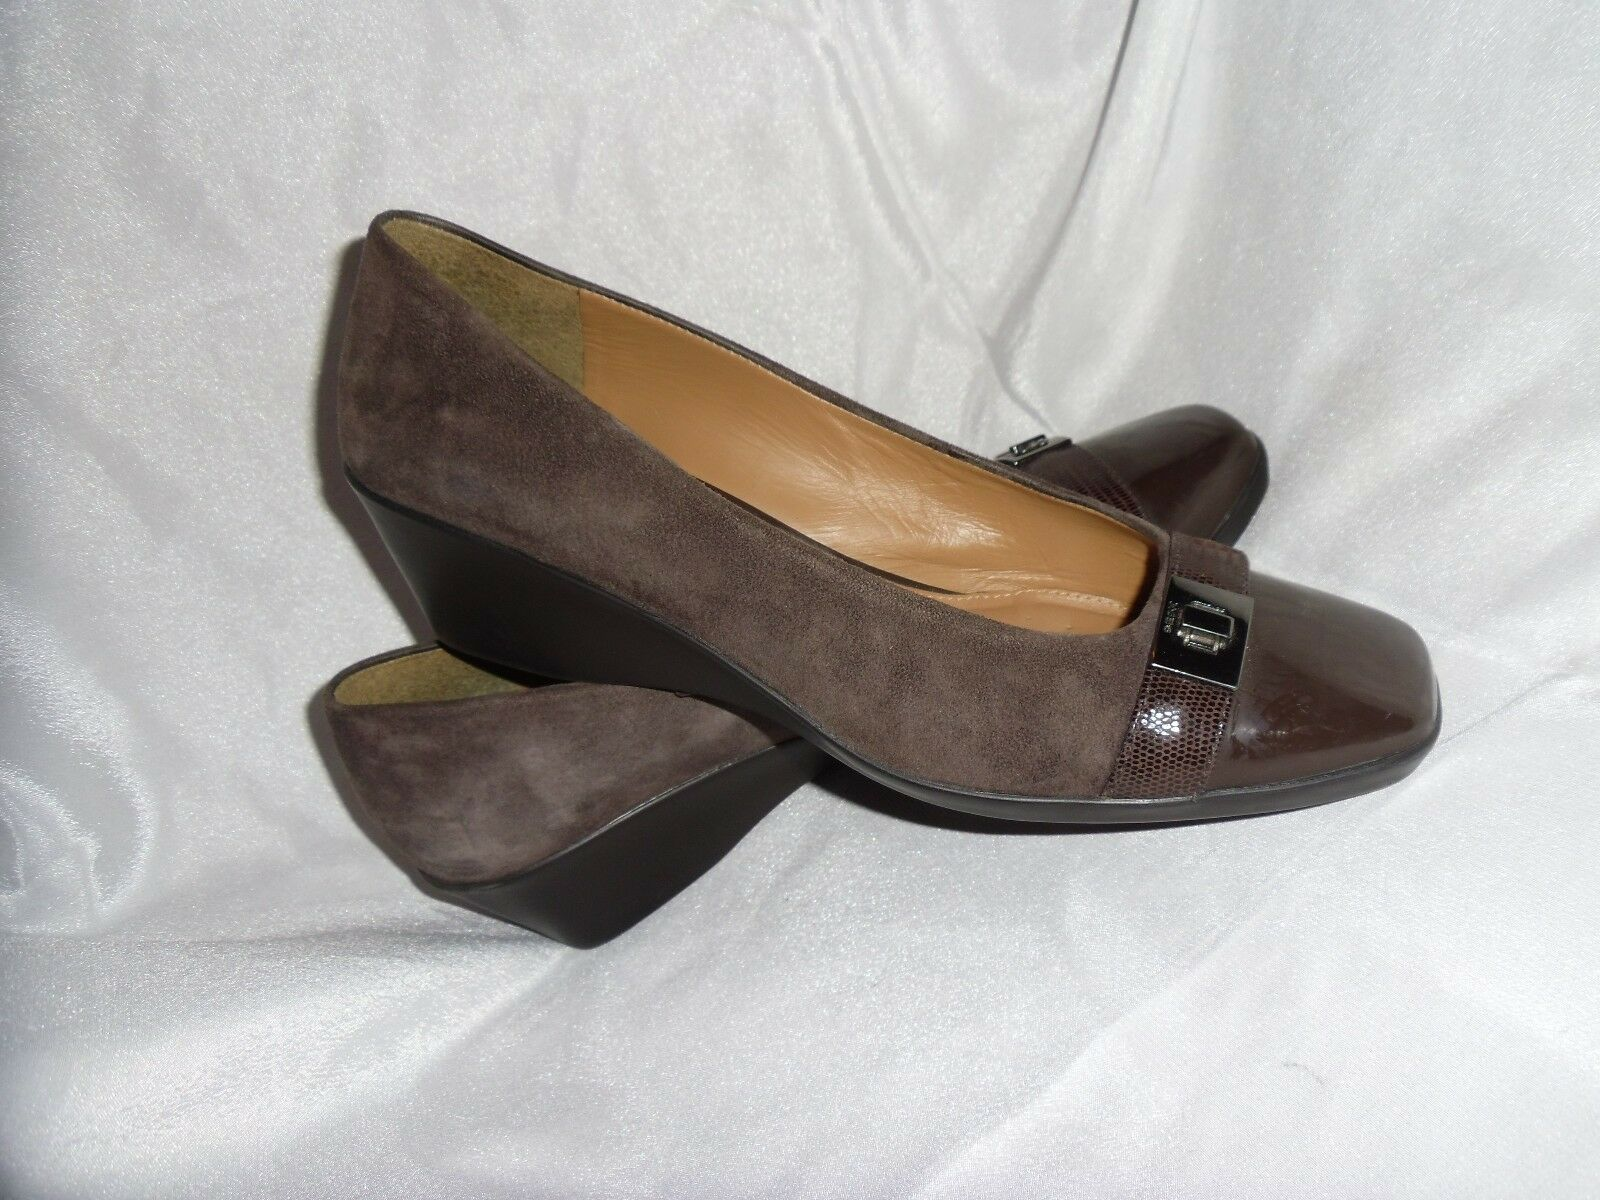 GEOX WOMEN'S BROWN SUEDE/PATENT LEATHER SLIP ON Schuhe SIZE UK 5 EU 38 VGC